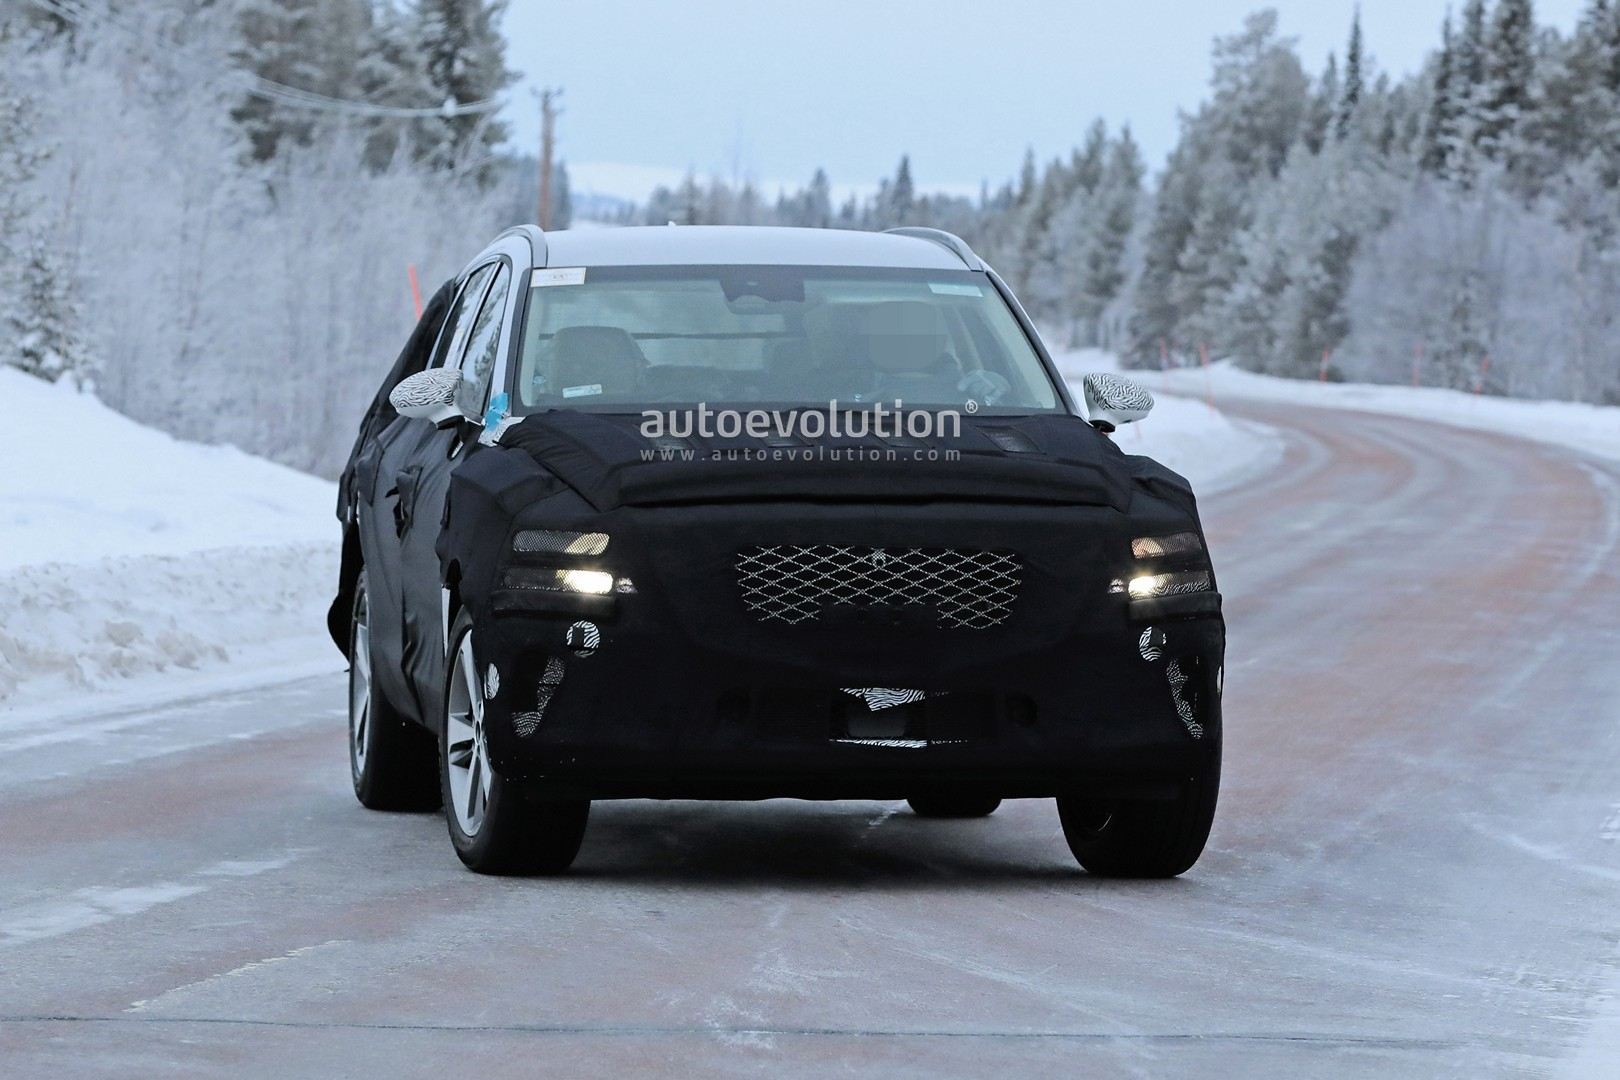 2019 - [Genesis] SUV GV80 - Page 2 Genesis-gv80-suv-prototype-makes-production-spyshots-debut_3